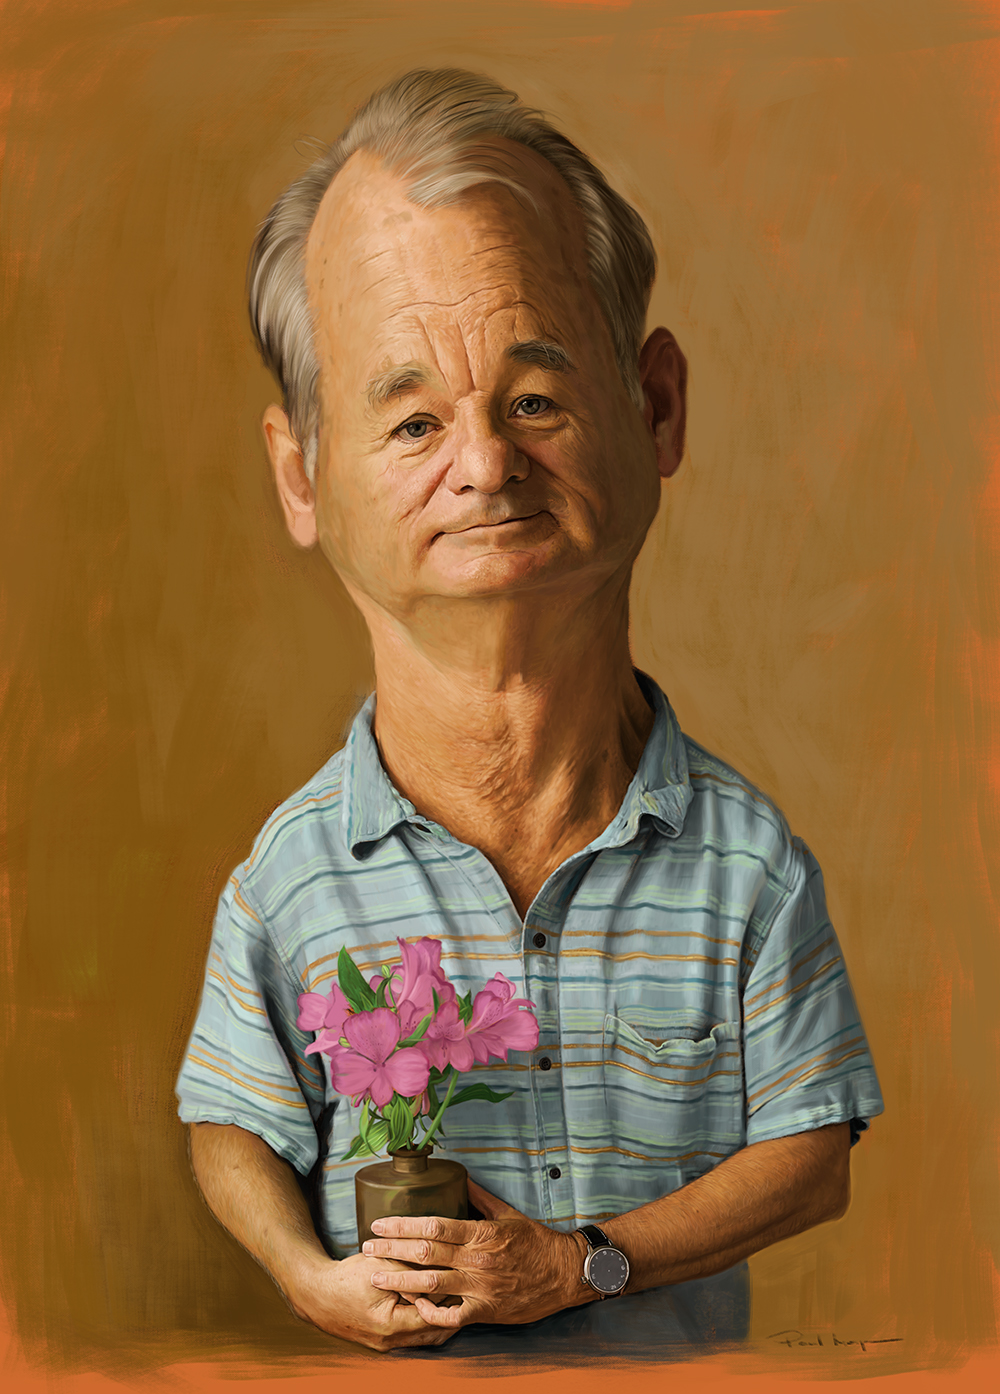 Bill Murray Print - Image size 30 x 42cmBorder size 15mmOpen EditionPrinted on Hahnemuhle Photo Rag Fine Art Paper£75 + shipping